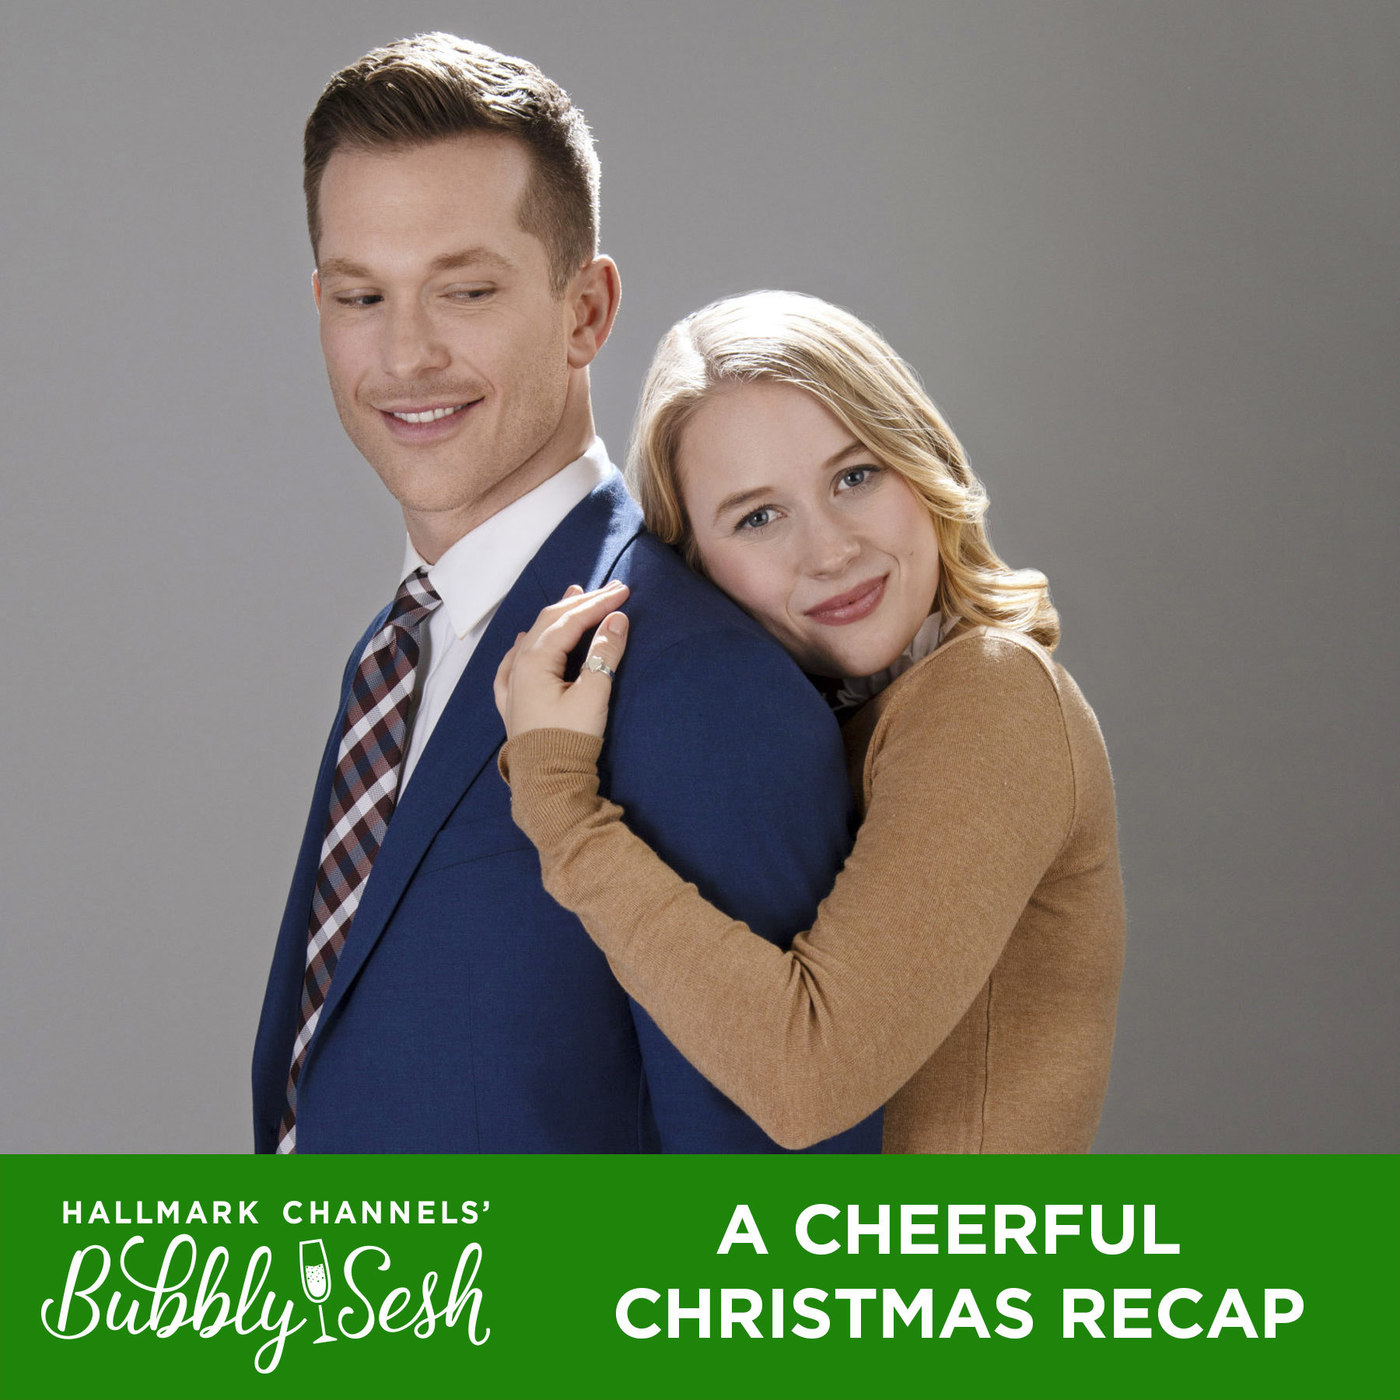 A Cheerful Christmas Recap